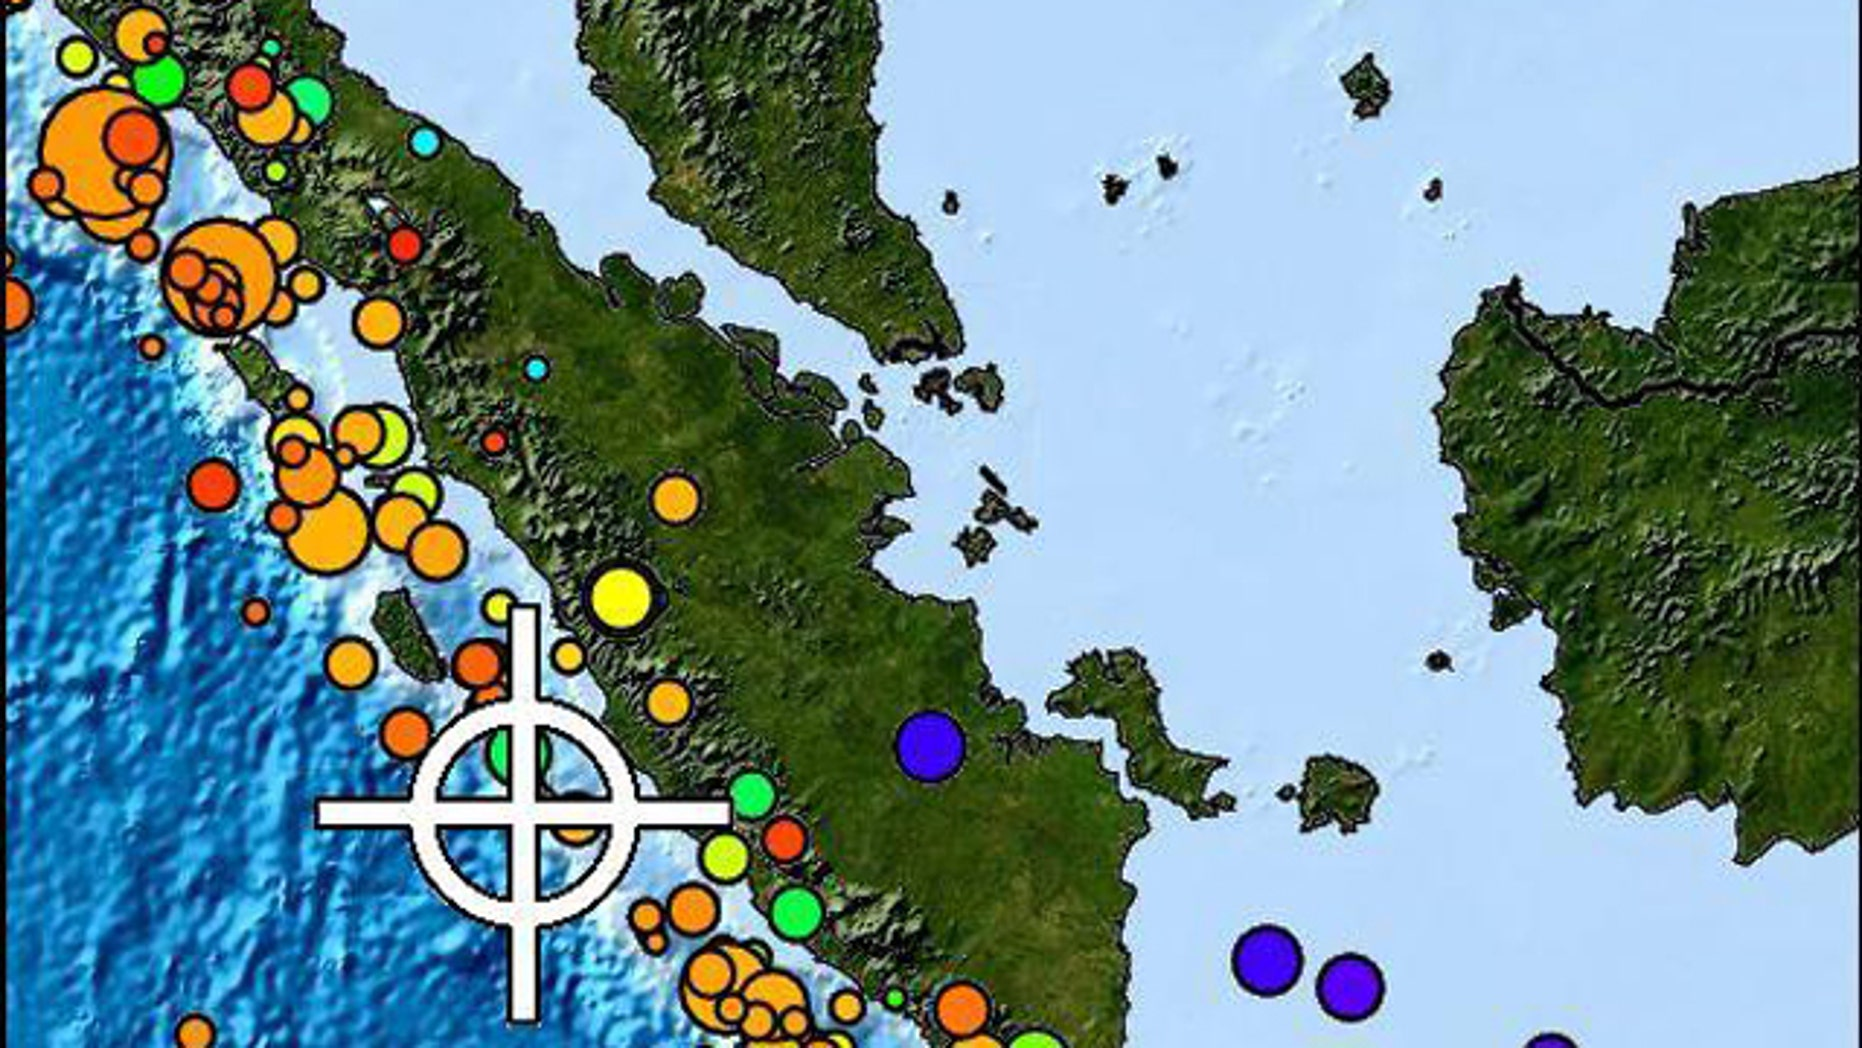 Circles indicate the magnitude and colors indicate the depth of earthquakes off the coast of Indonesia in this NOAA map. Red colors indicate shallower quakes, while green through purple indicate deeper quakes less likely to lead to a tsunami.